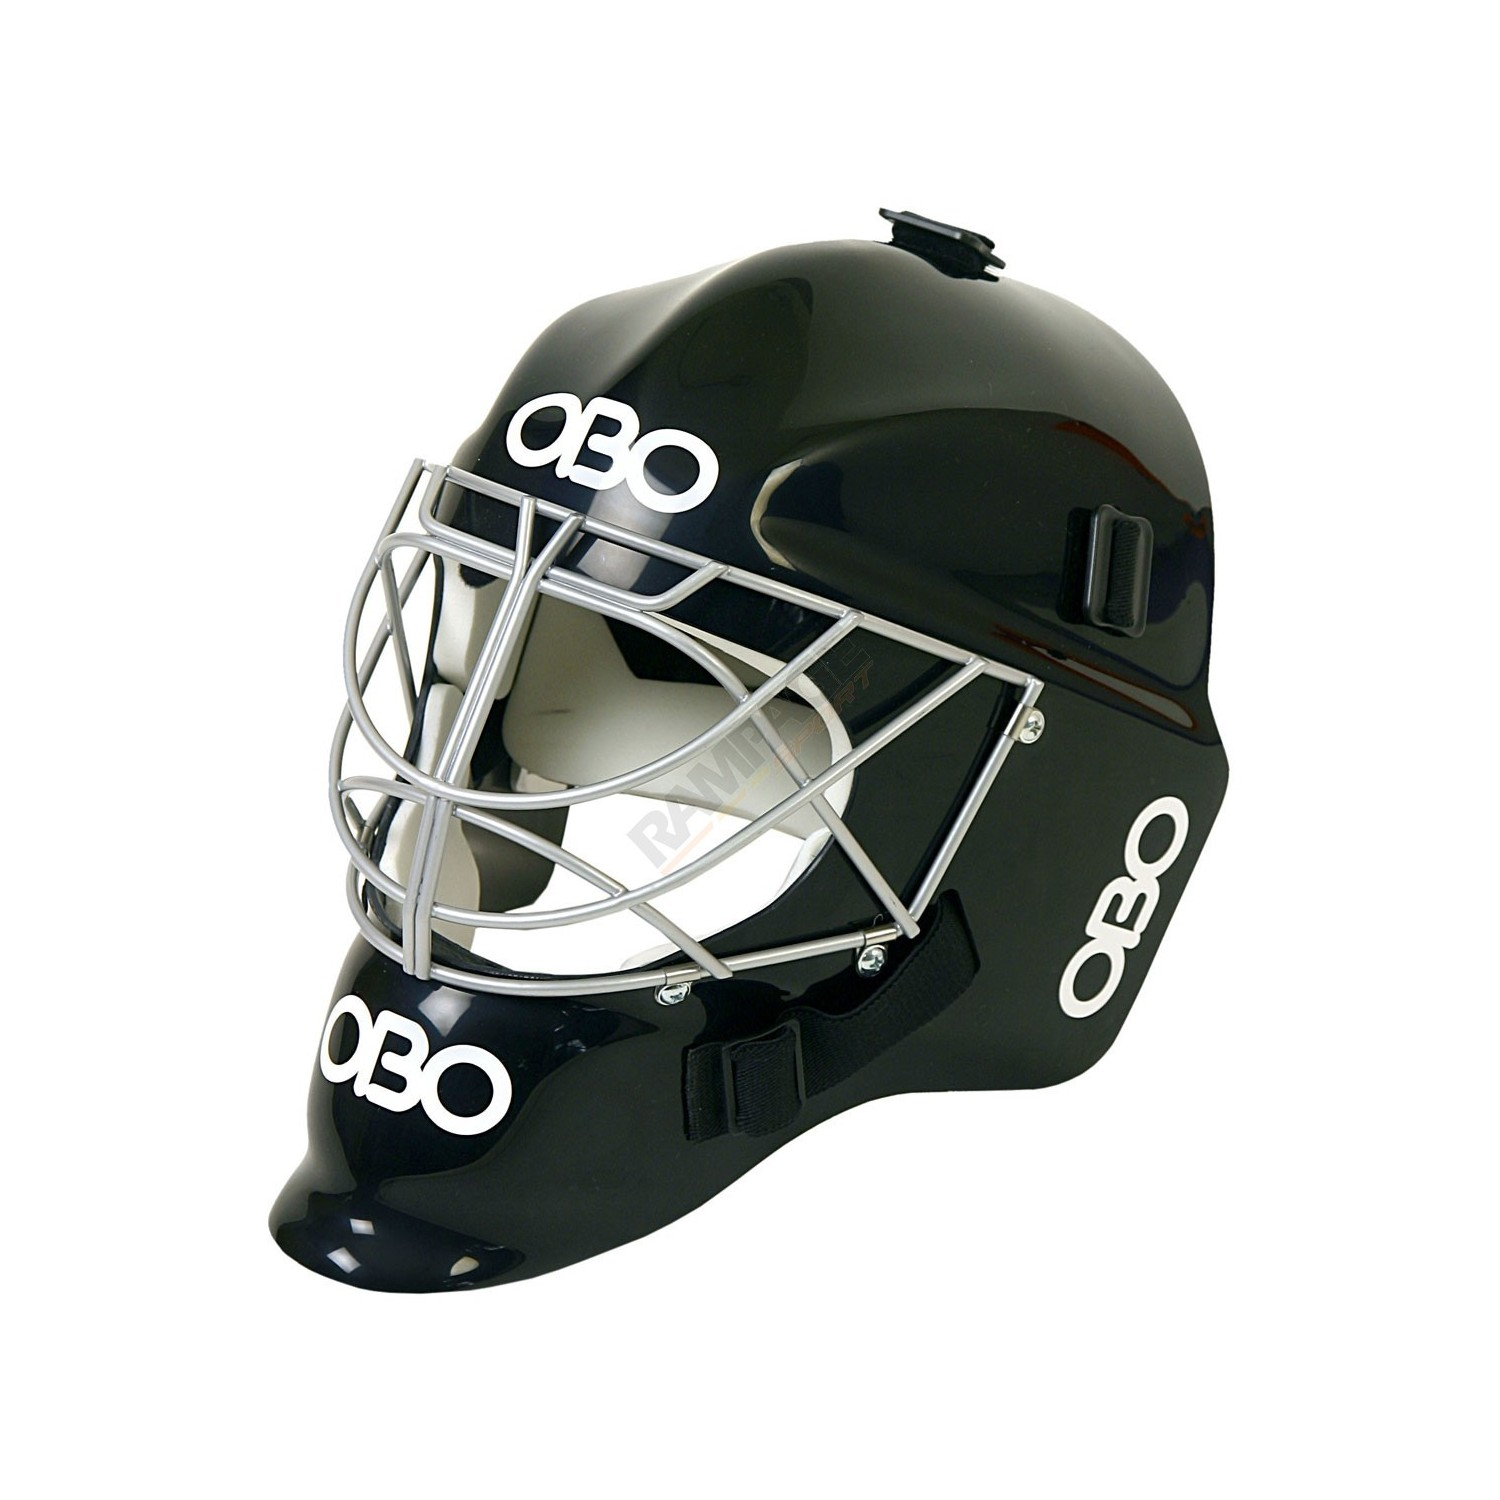 Obo Ck Goalkeeper Helmet Www Rampagesport Eu Sports Shop